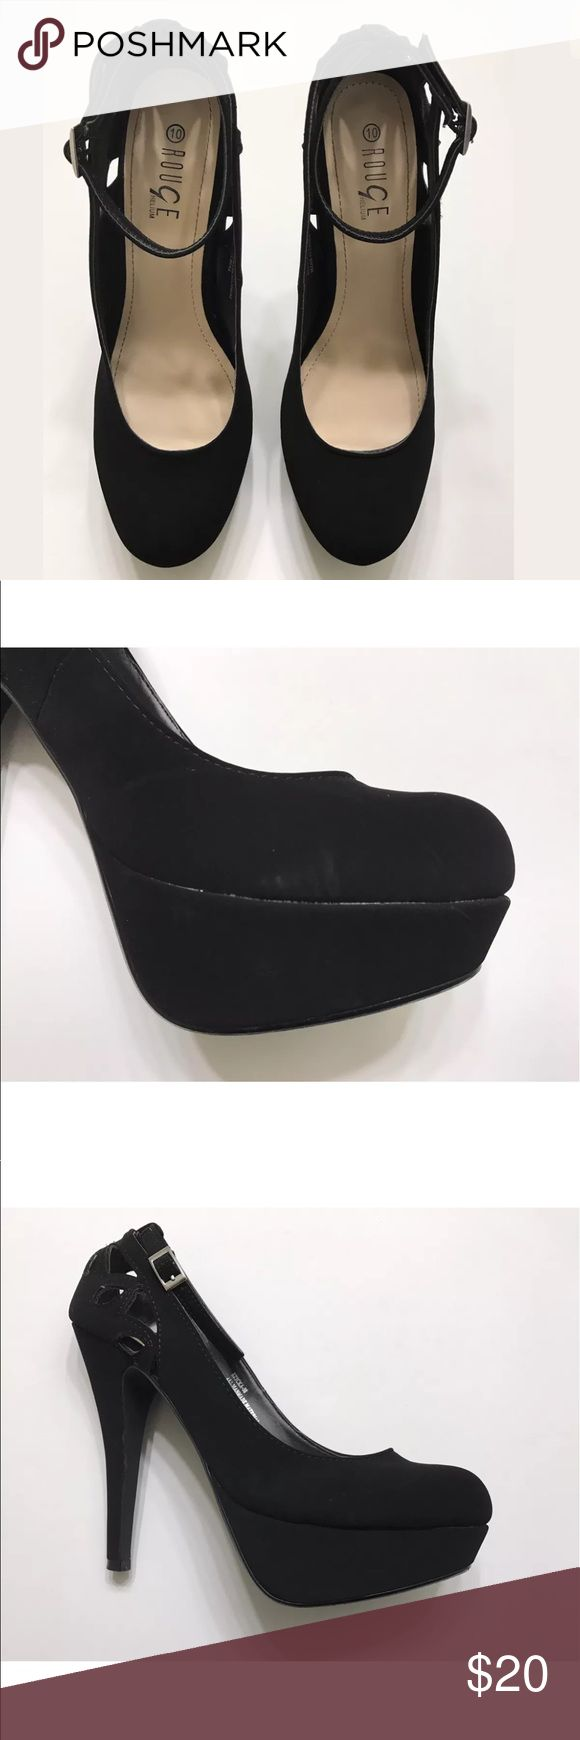 Rouge Helium  Size 10 High Stiletto Platform Pumps Ankle strap  Back design  Platform 1.5inches  Heel height 5.5inches  Small side scuff Synthetic suede Rouge Helium Shoes Heels